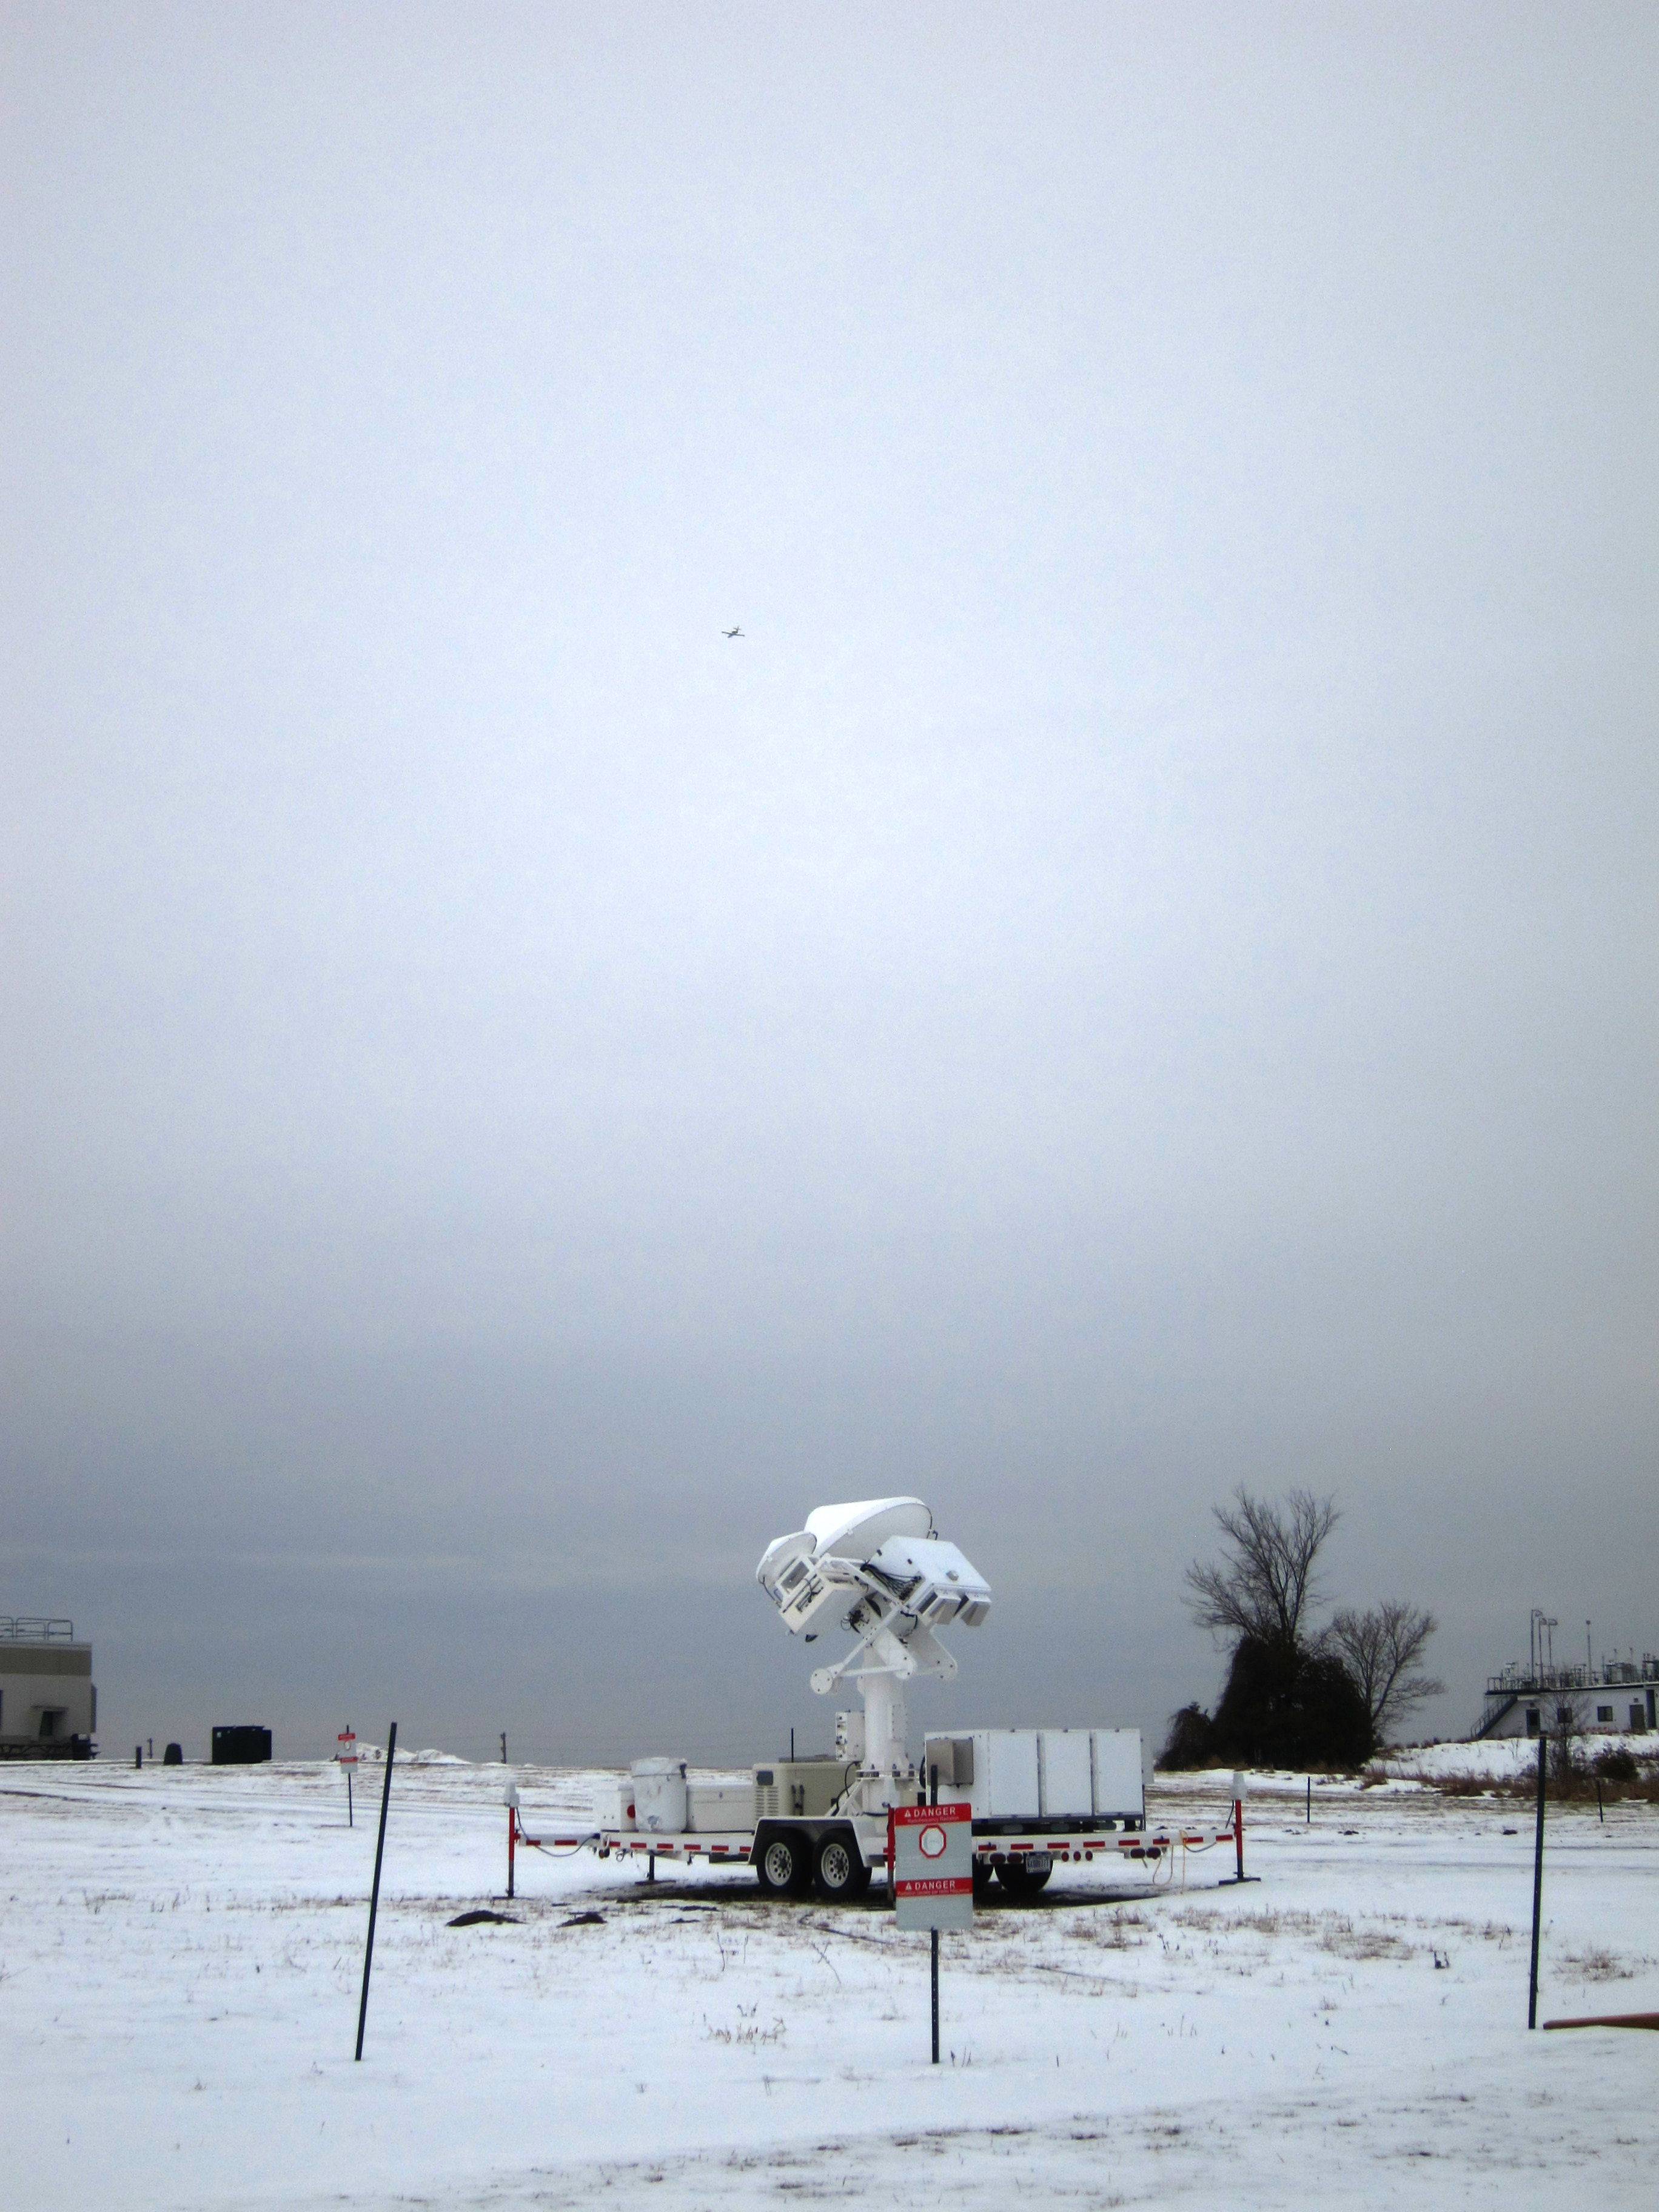 Radar on the ground with Citation in the sky